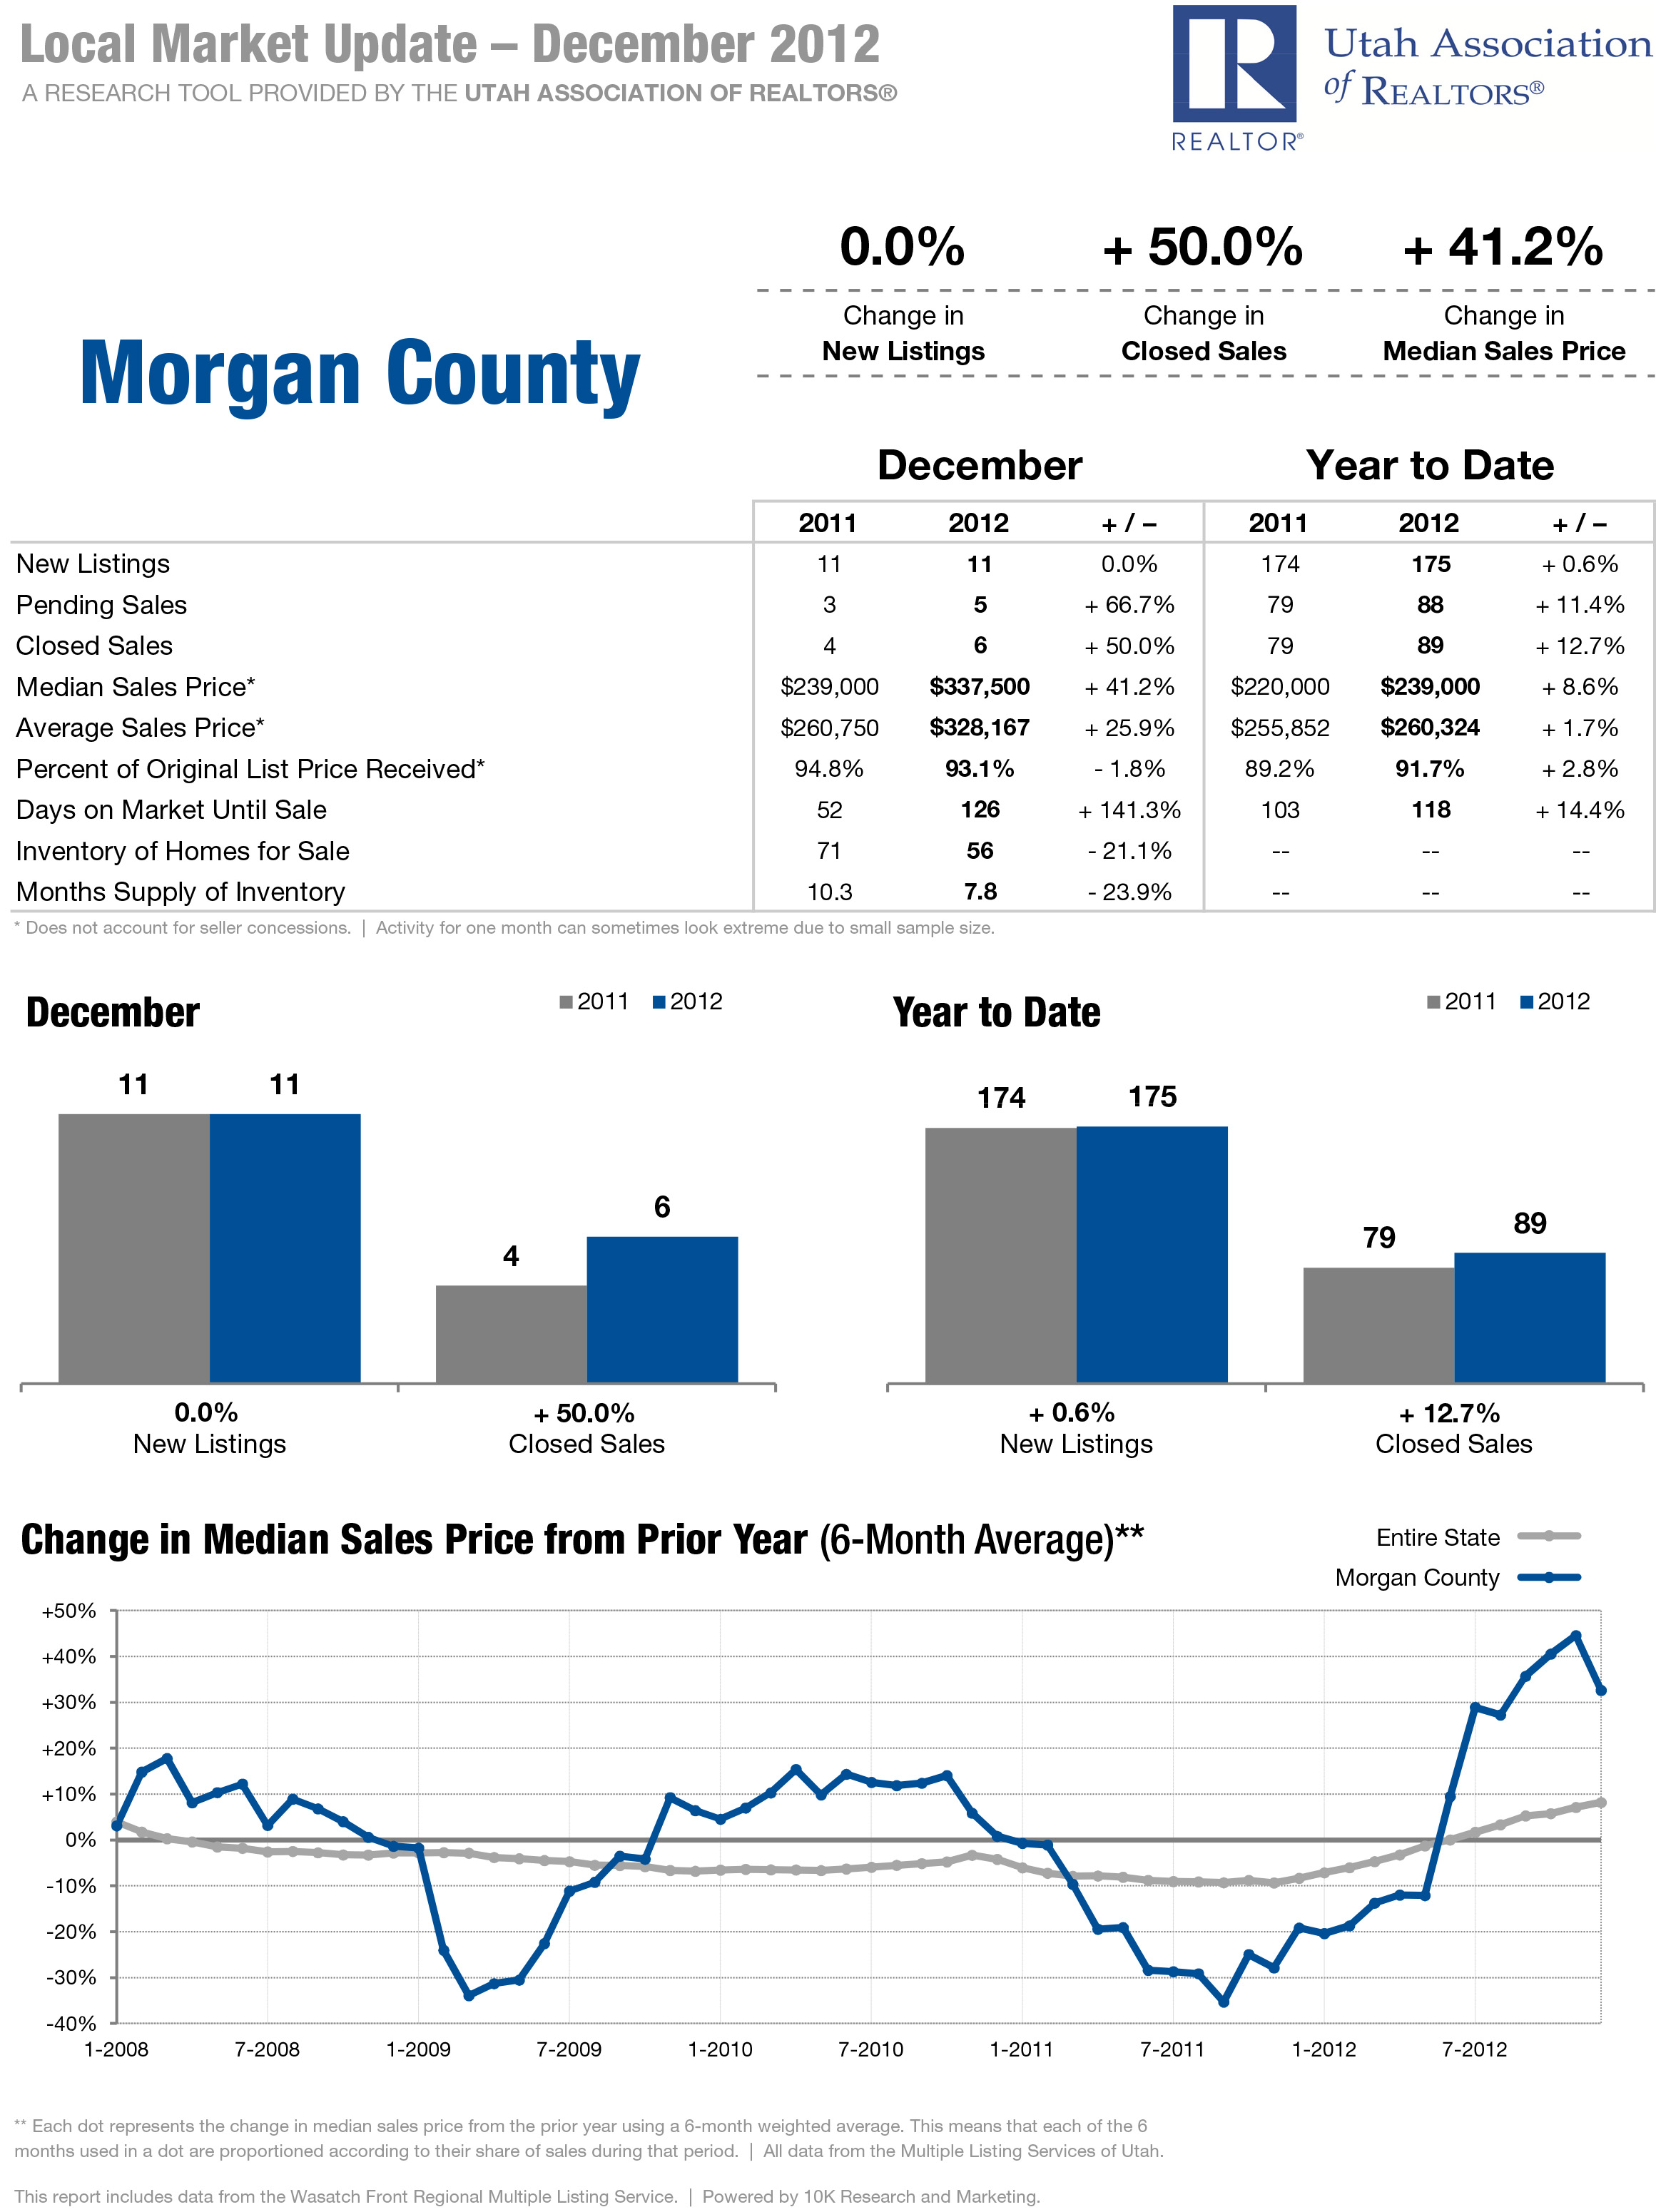 Morgan County Local Market Update for December 2012